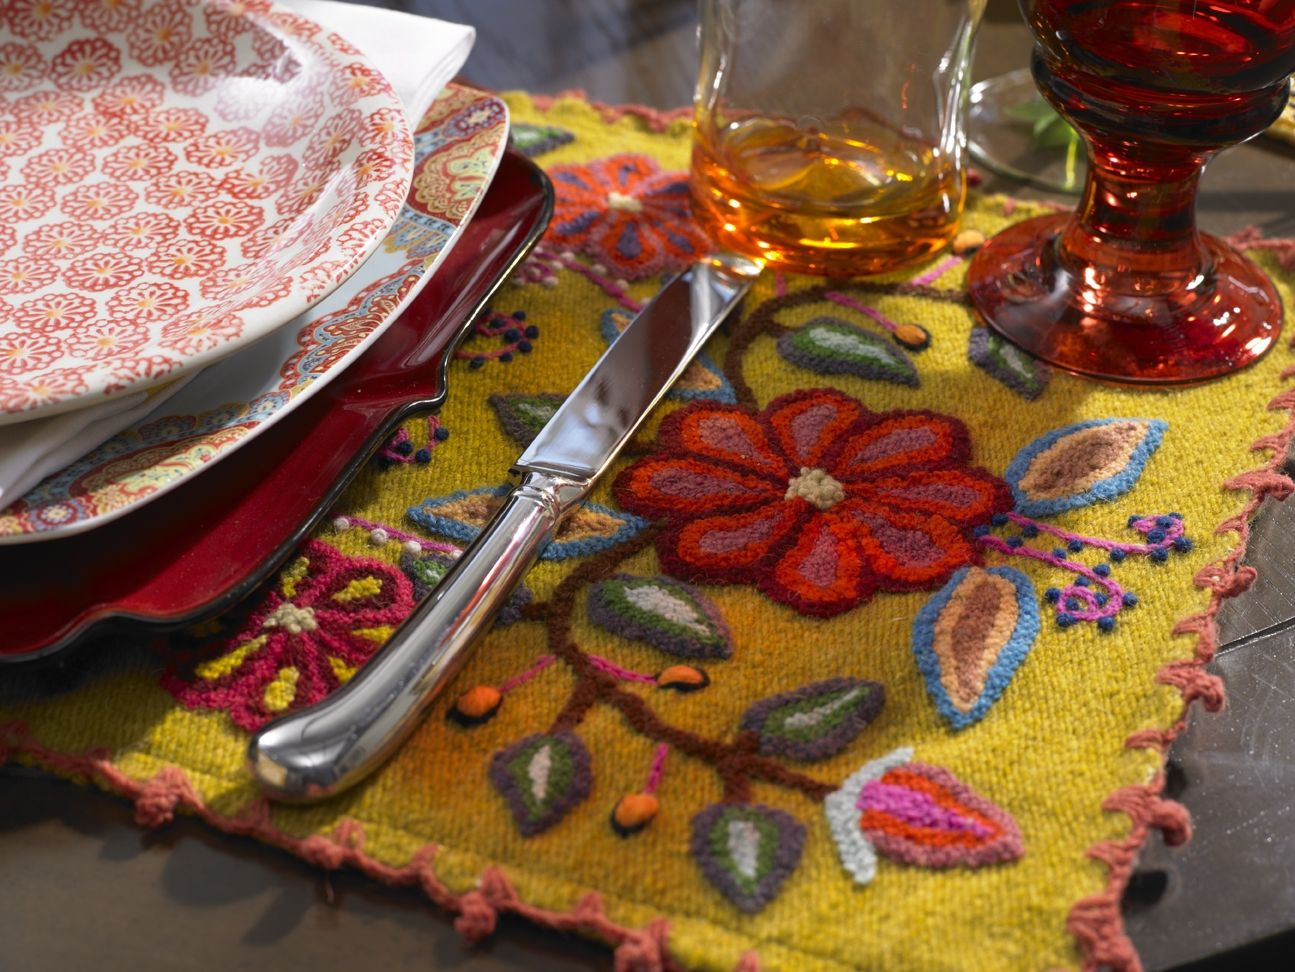 Gorgeous Bohemian embroidered placemat. | My Dream Home | Pinterest on kitchen kitchen, kitchen vases, kitchen glassware, kitchen mirrors, kitchen trays, kitchen tablecloths, kitchen silverware, kitchen glasses, kitchen clothing, kitchen stationery, kitchen food, kitchen cushions, kitchen utensils, kitchen crafts, kitchen photography, kitchen napkins, kitchen pitchers, kitchen pillows, kitchen boxes, kitchen cutting boards,